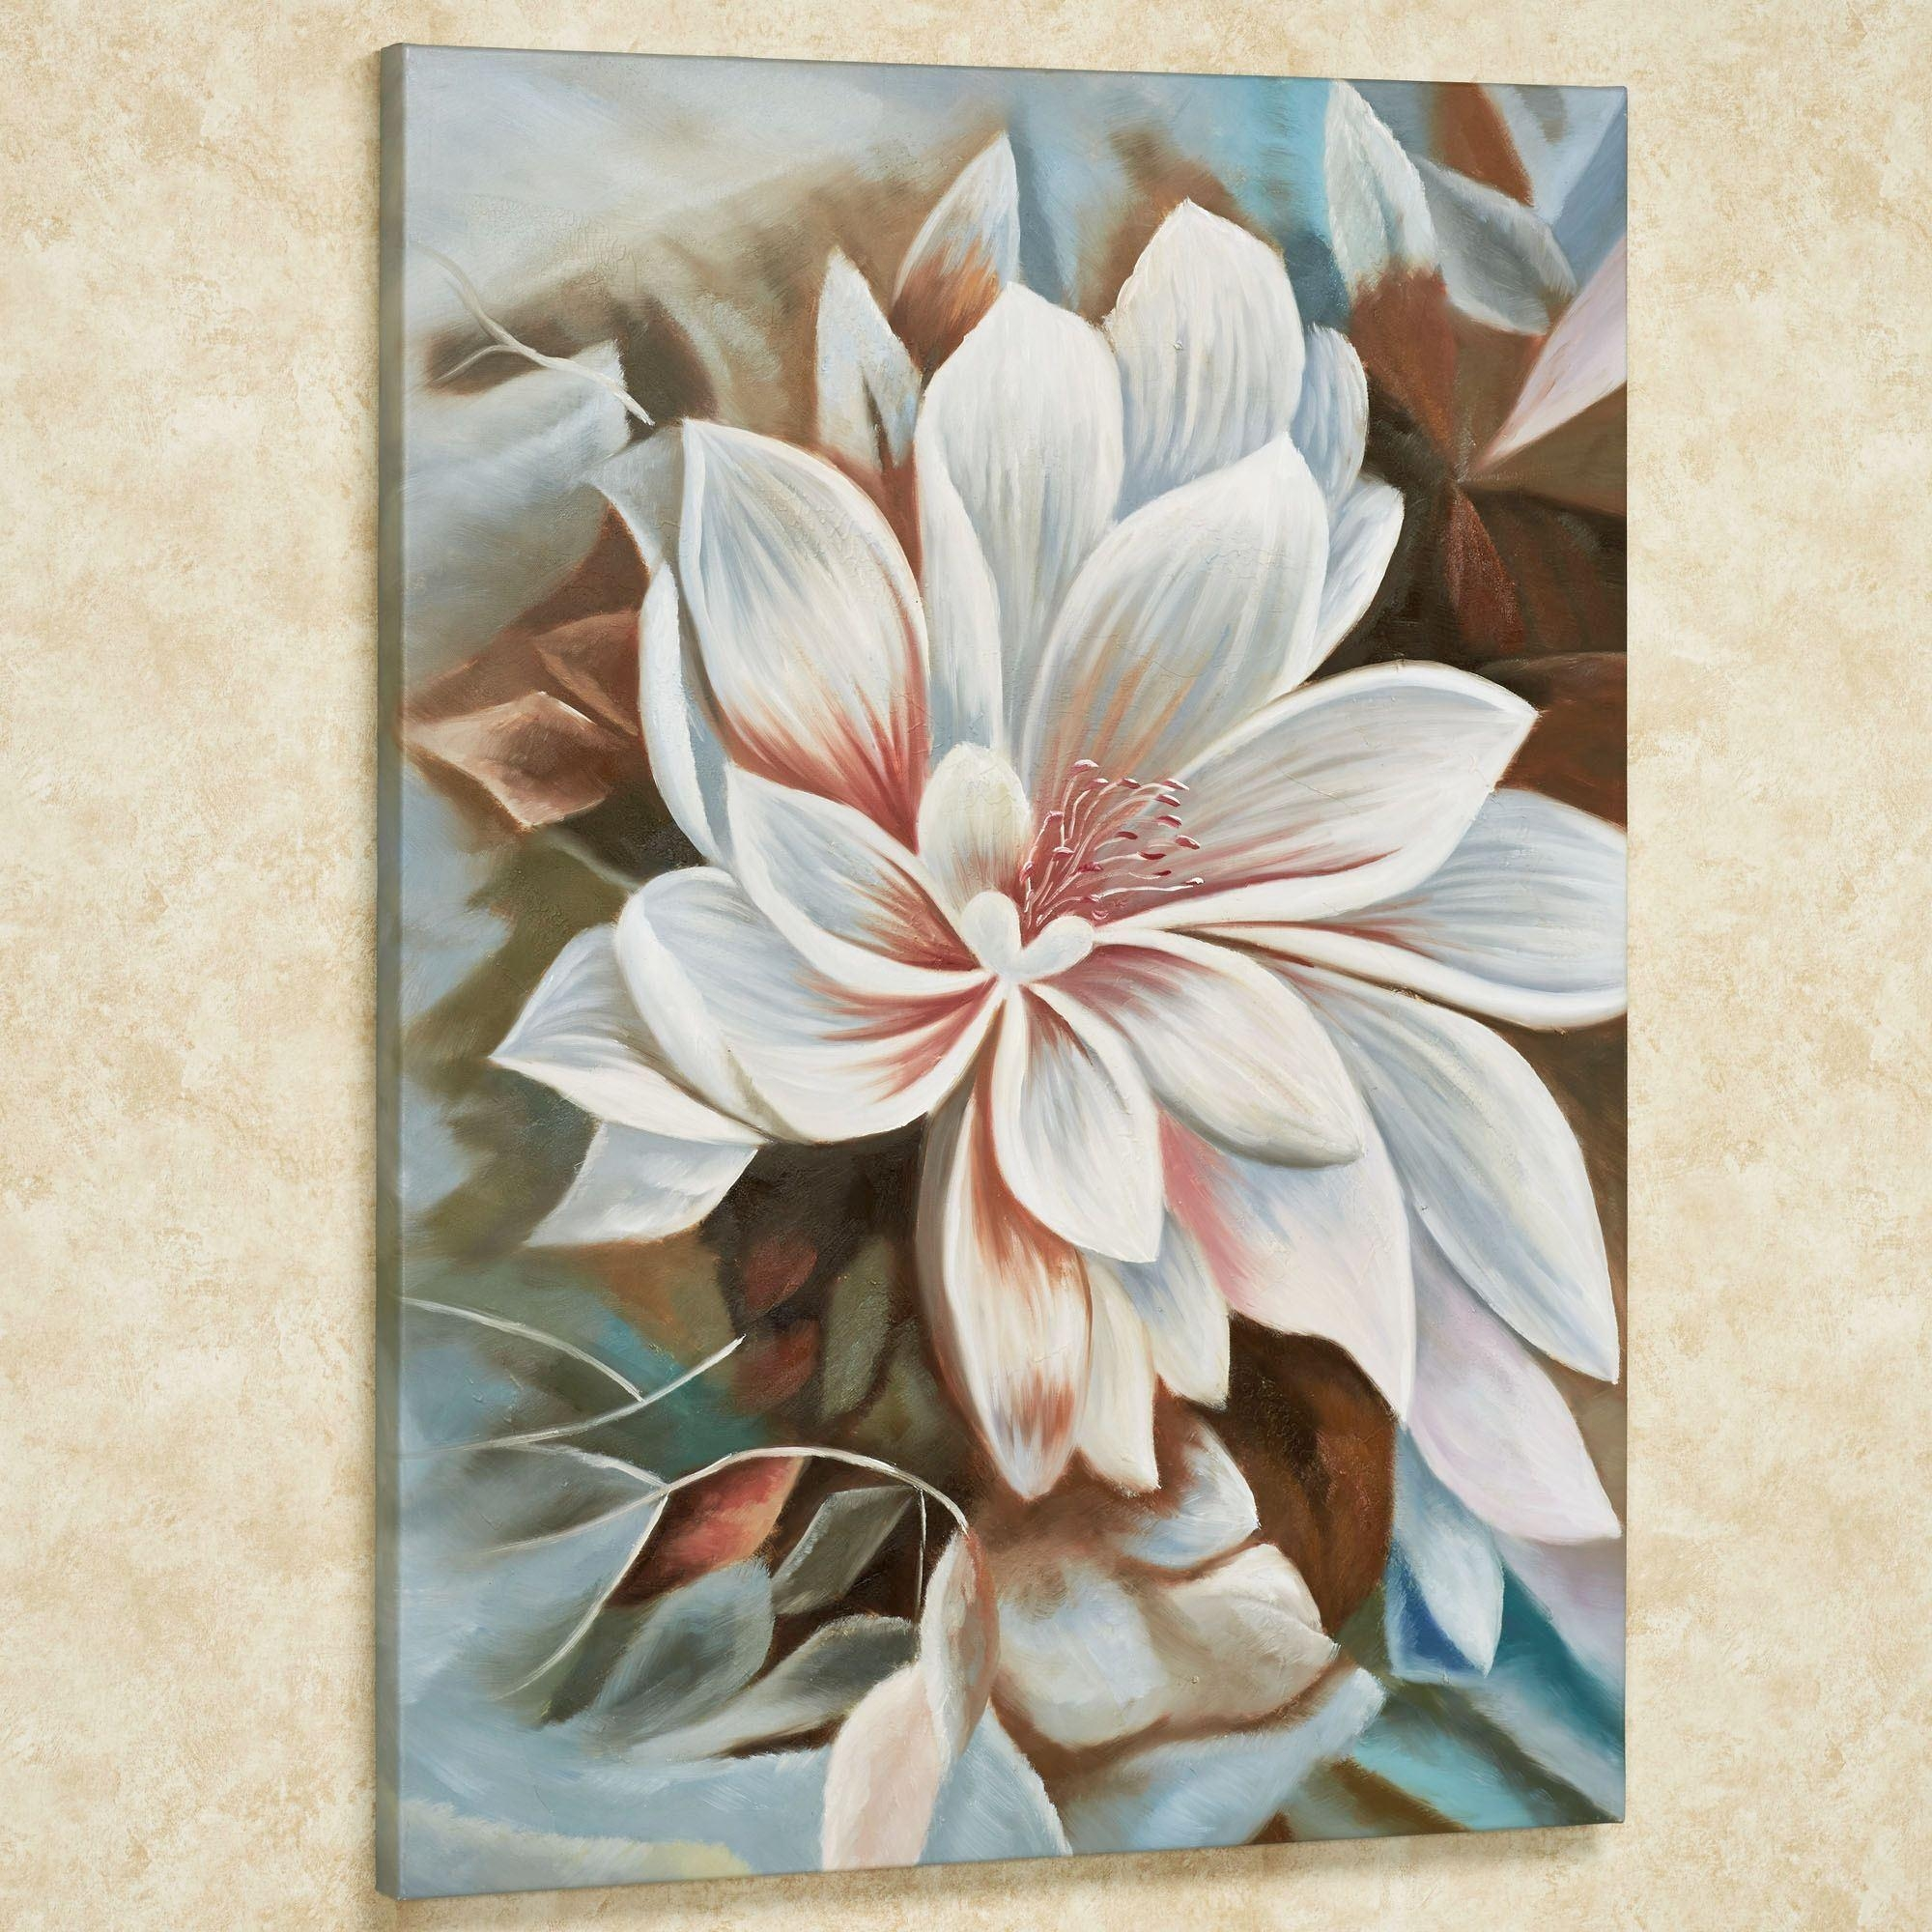 Bursting Beauty Magnolia Floral Canvas Wall Art With Floral Wall Art Canvas (Image 3 of 20)